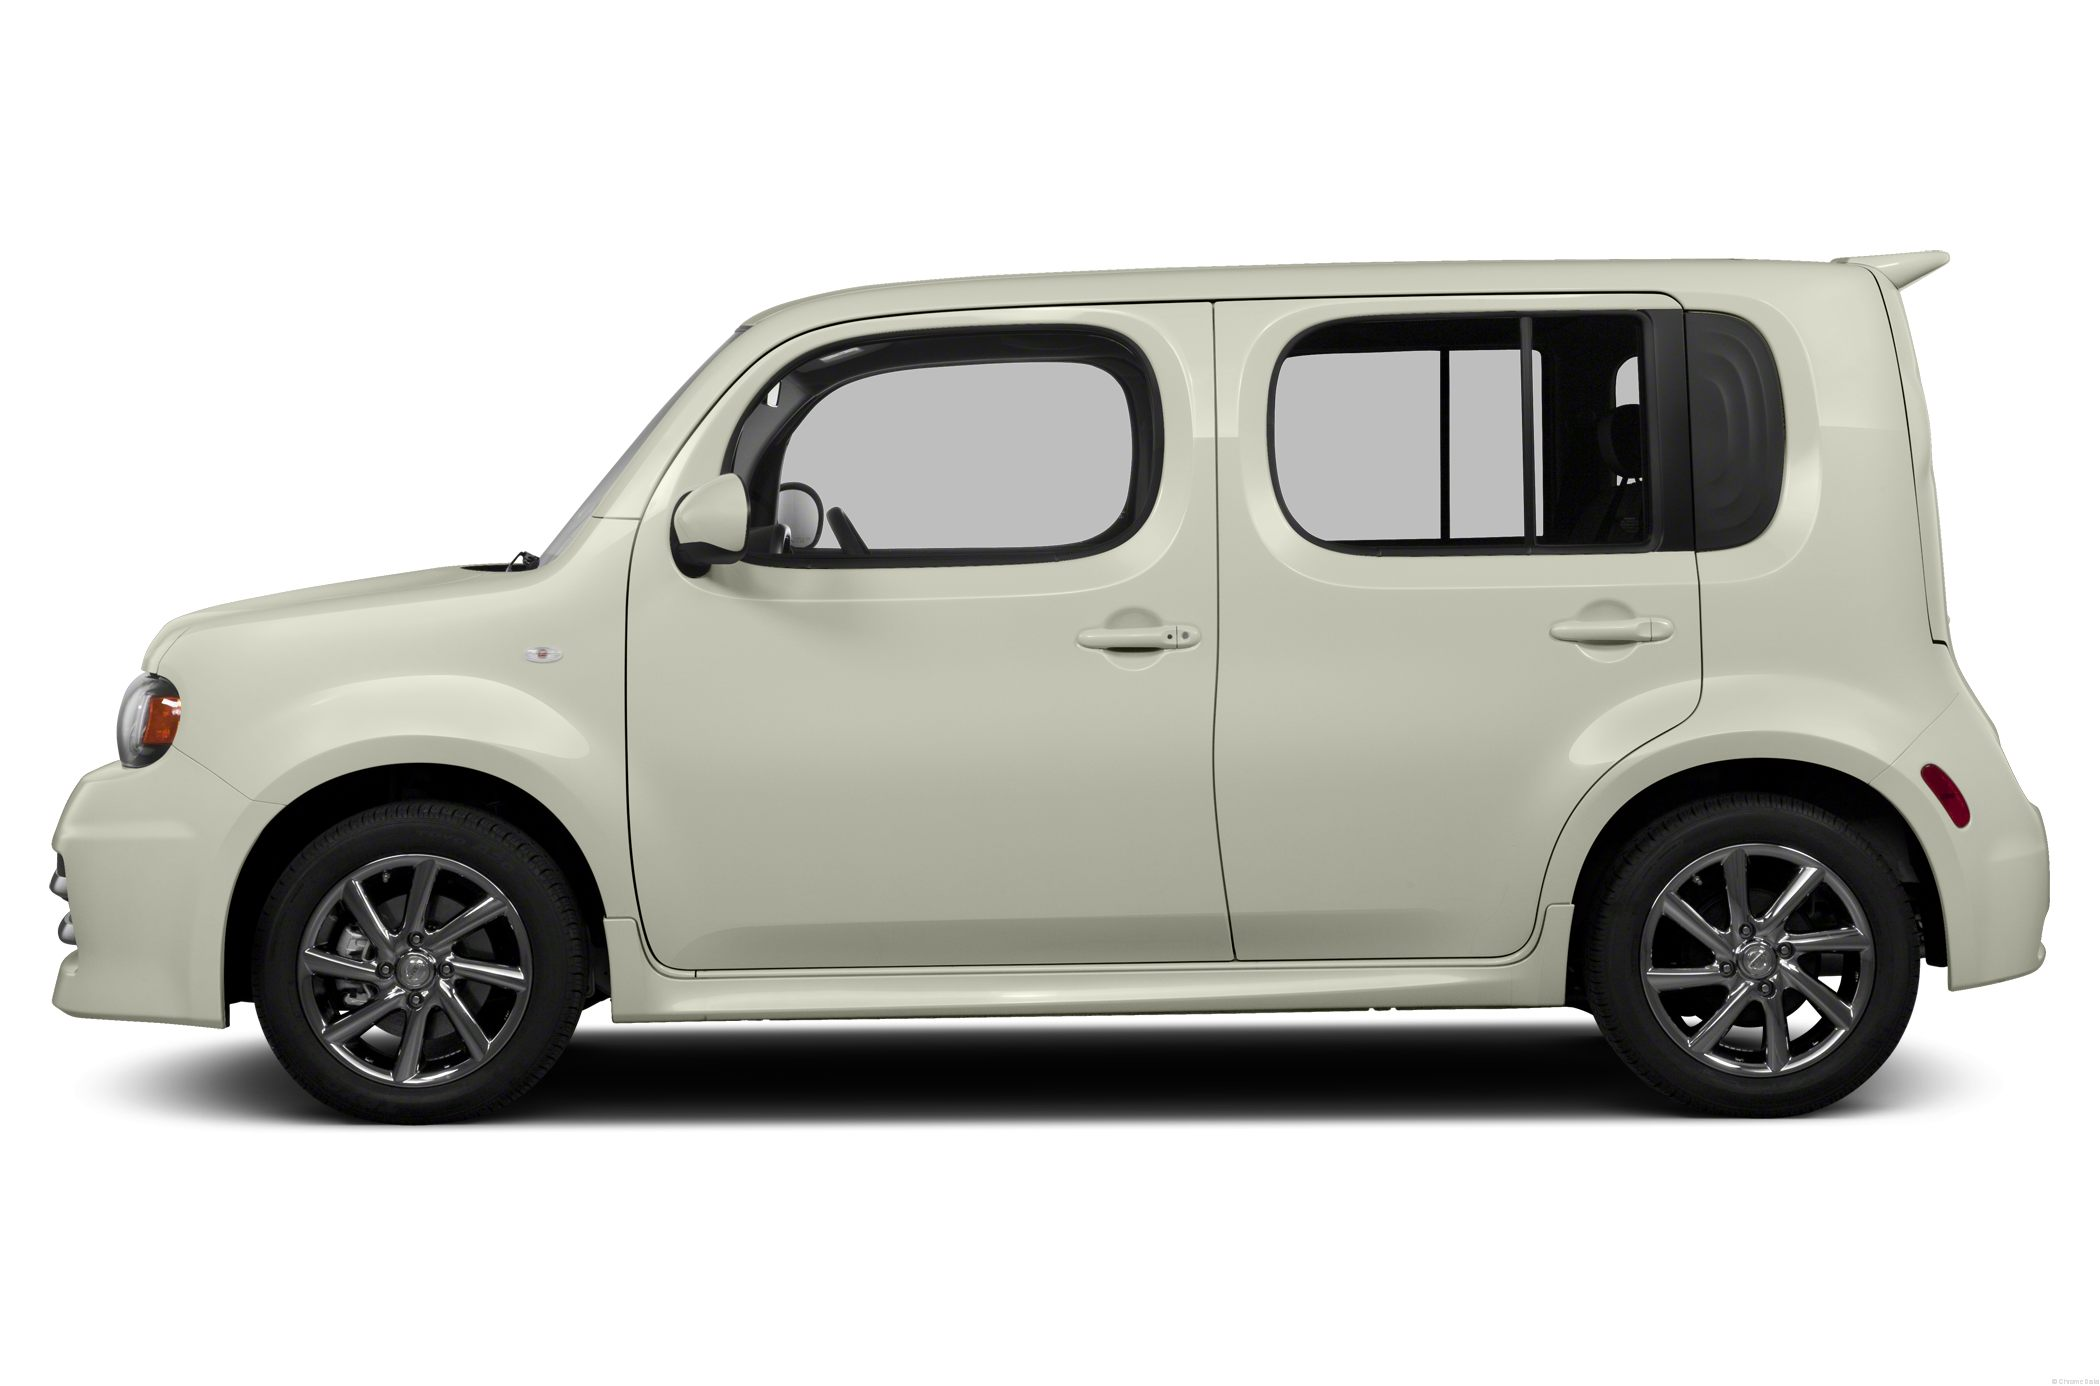 2013 Nissan Cube Image 5